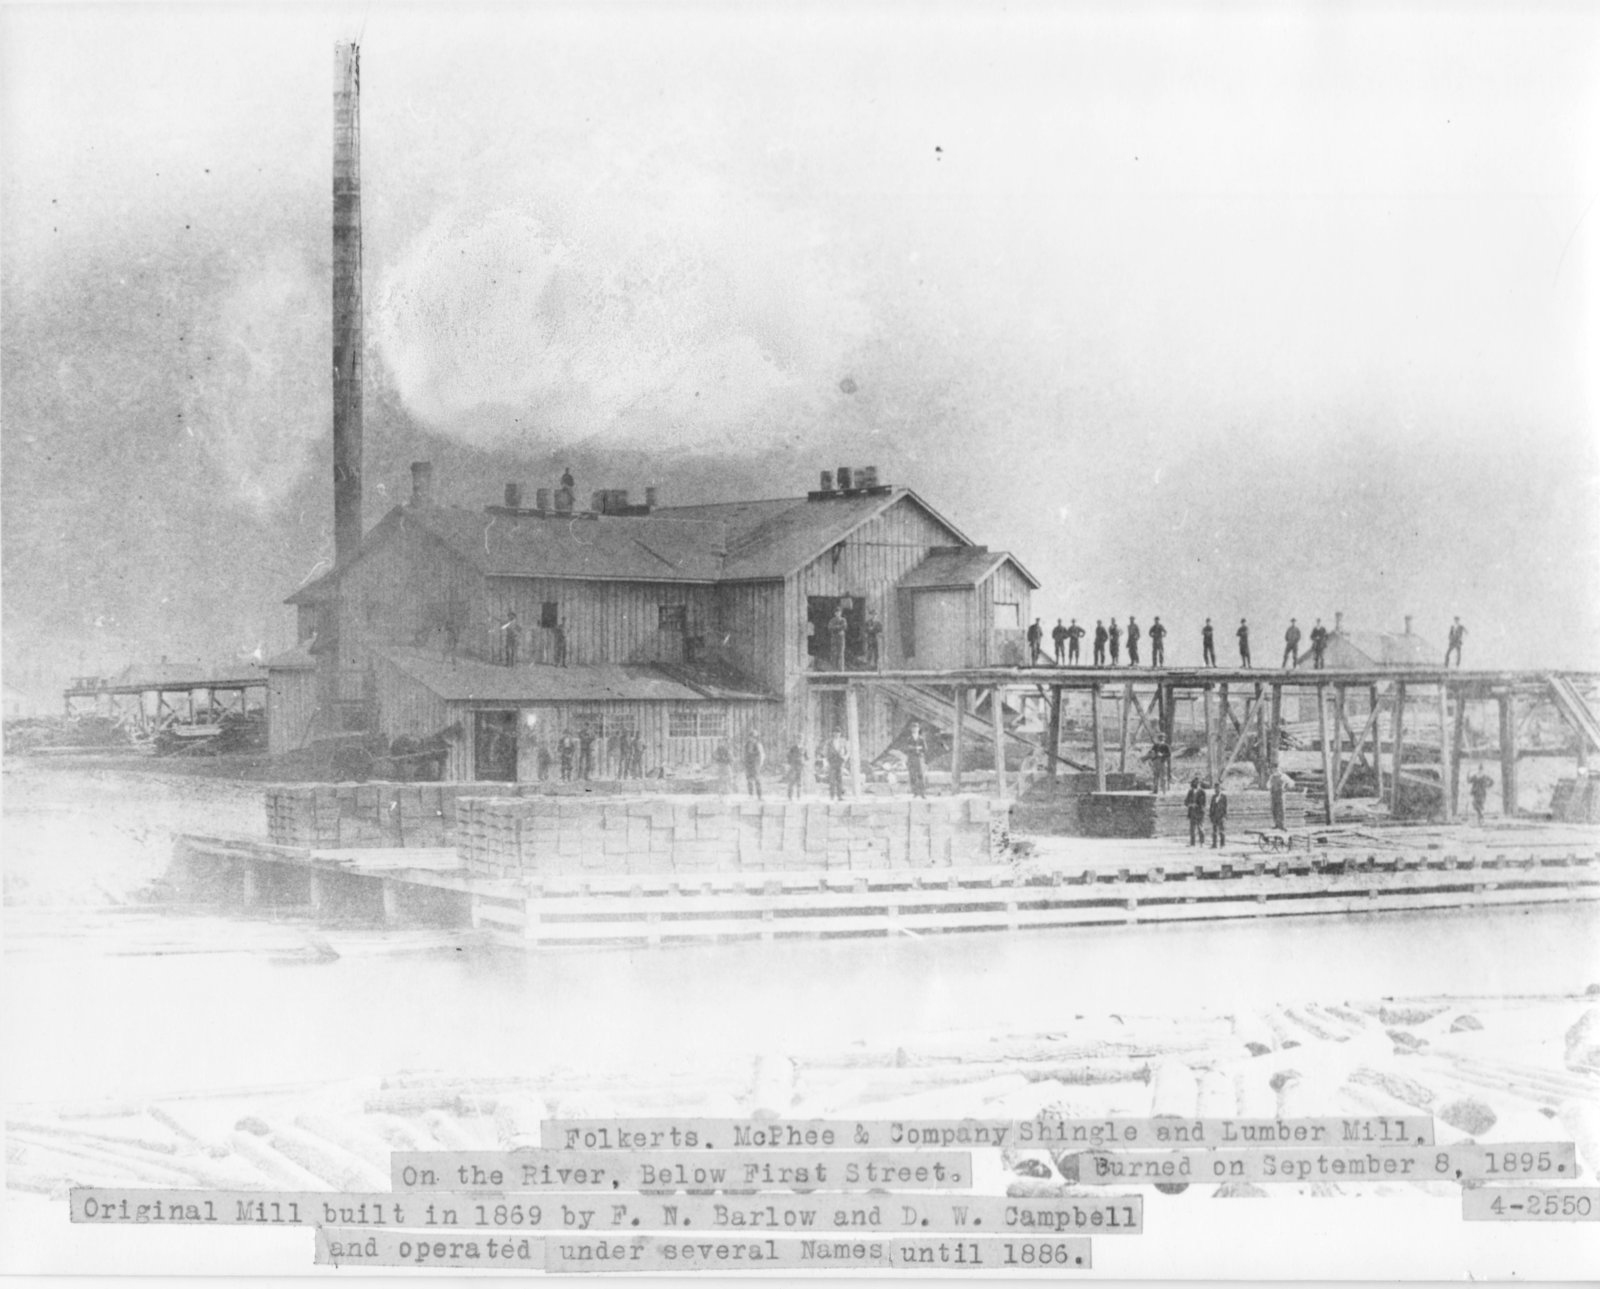 Folkerts, McPhee & Company Shingle and Lumber Mill